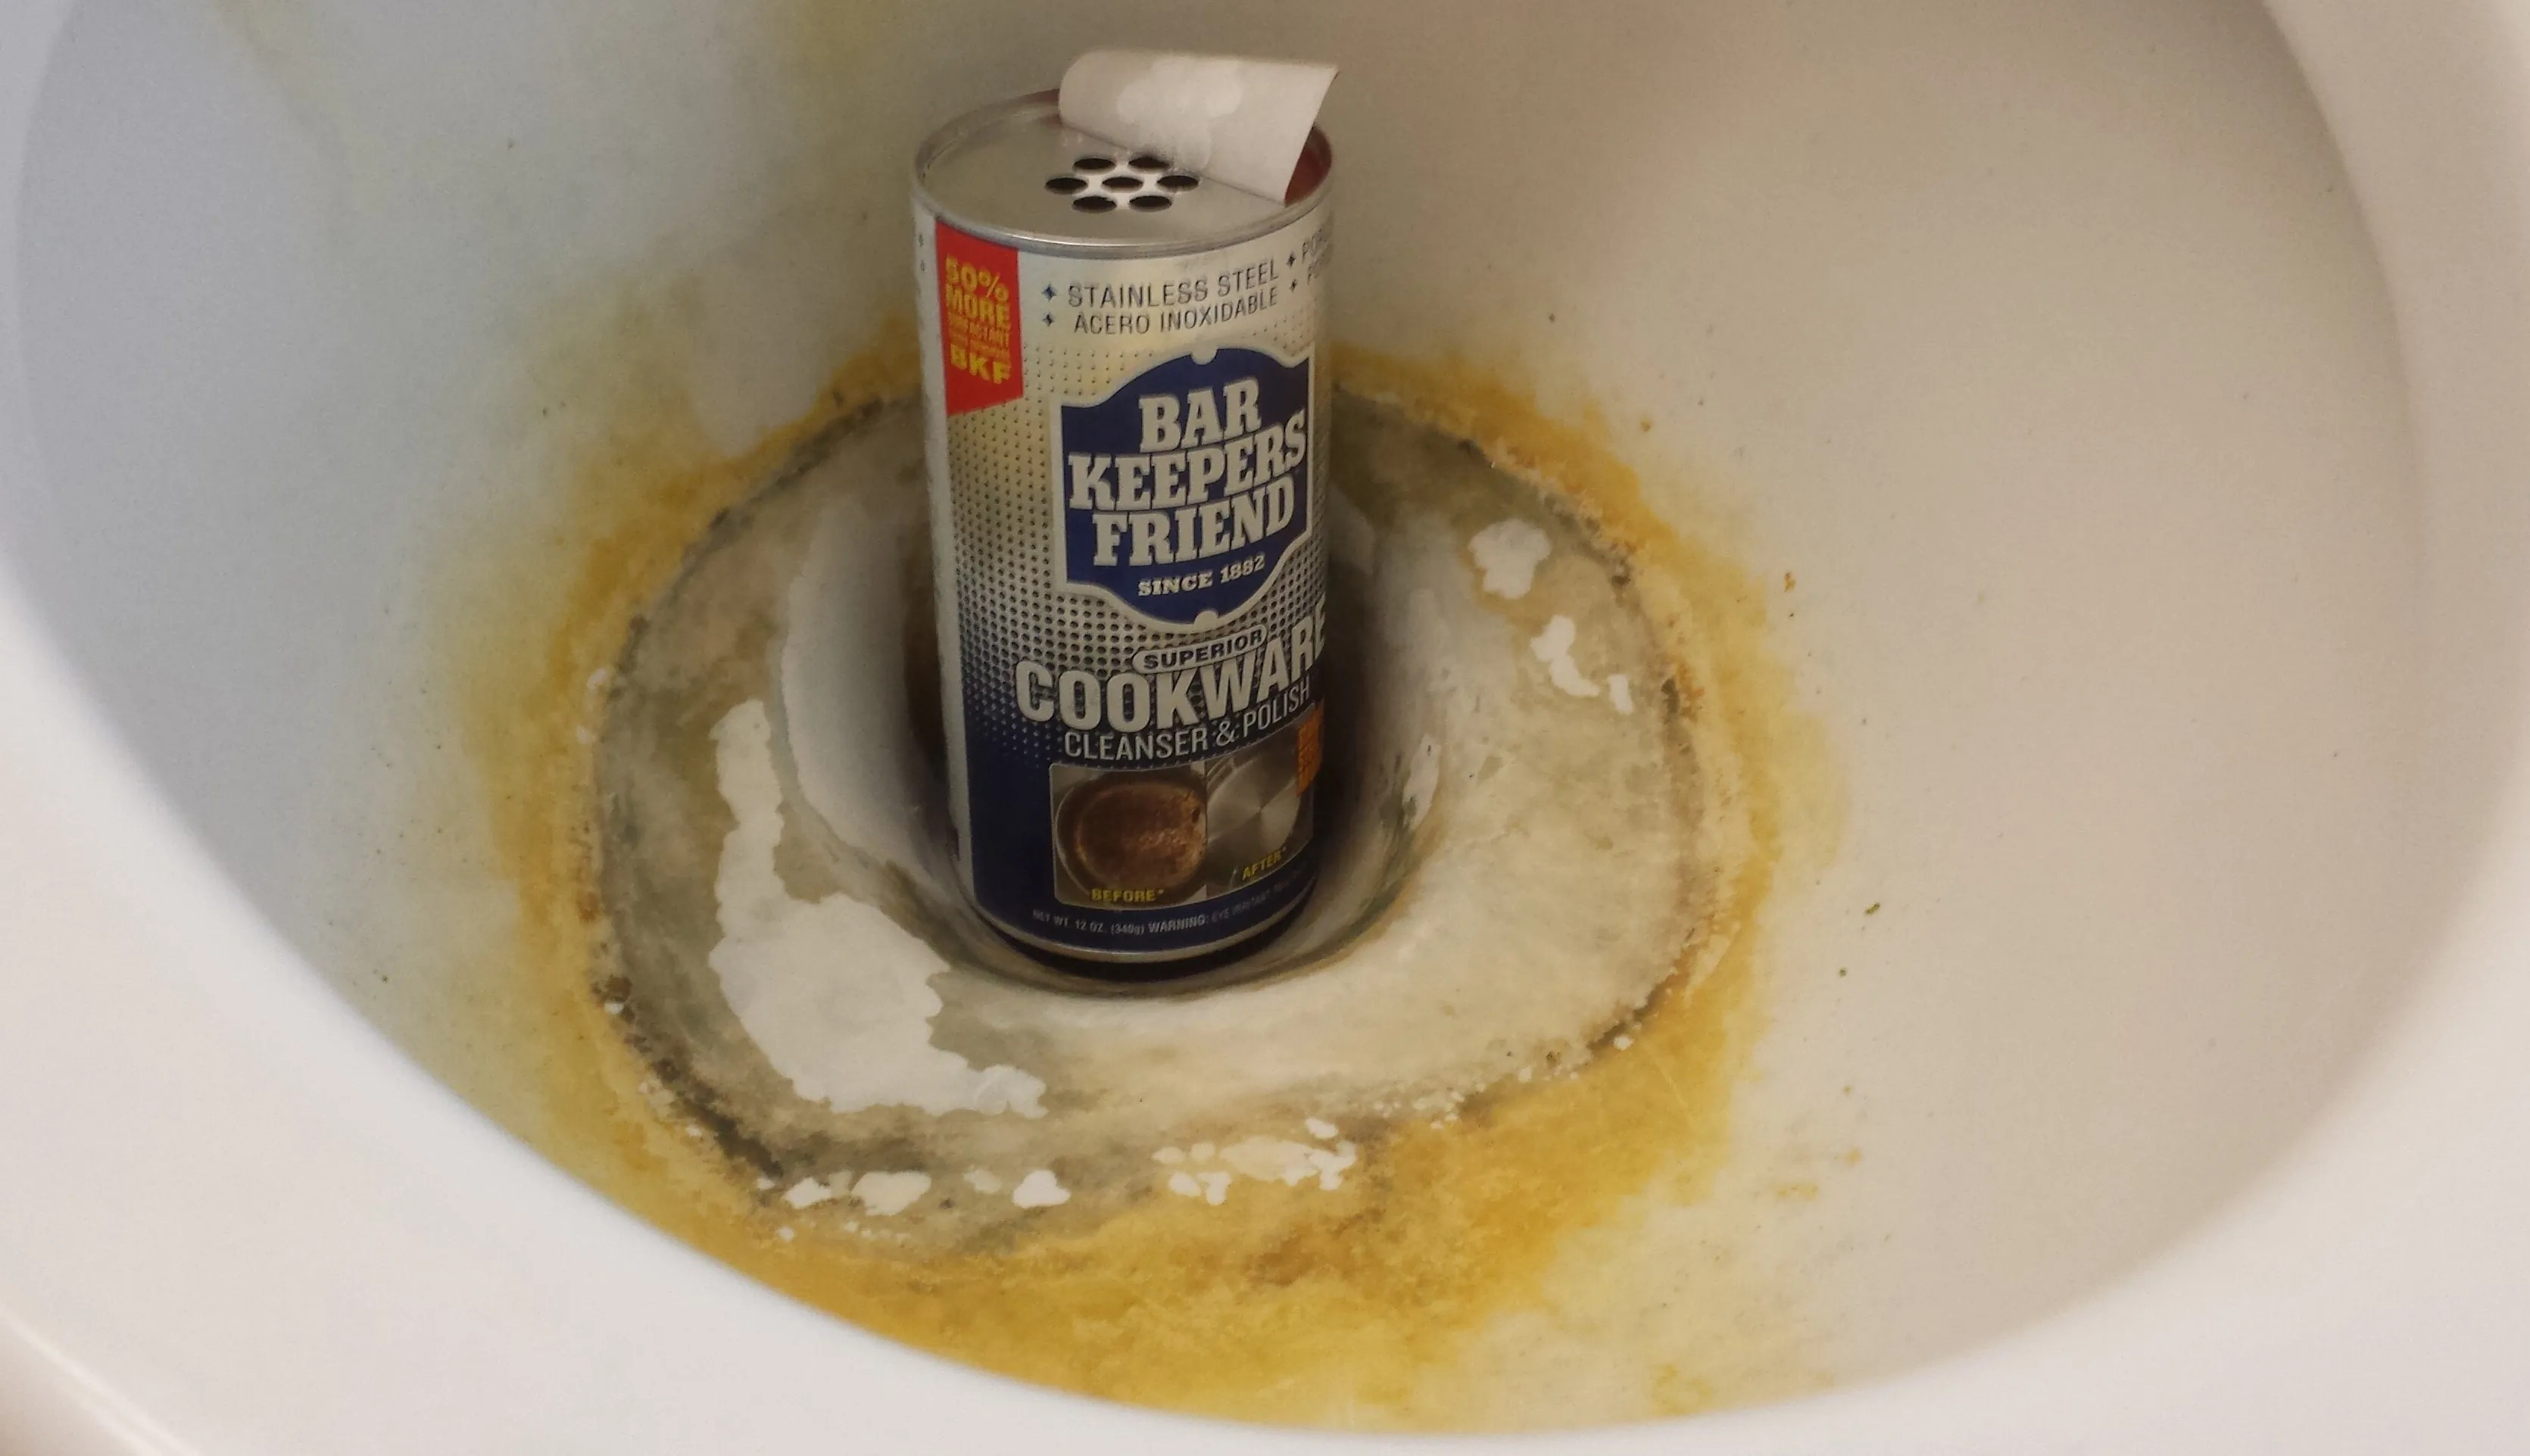 How To Clean Hard Water Stains And Rust From A Toilet Bowl, Bar